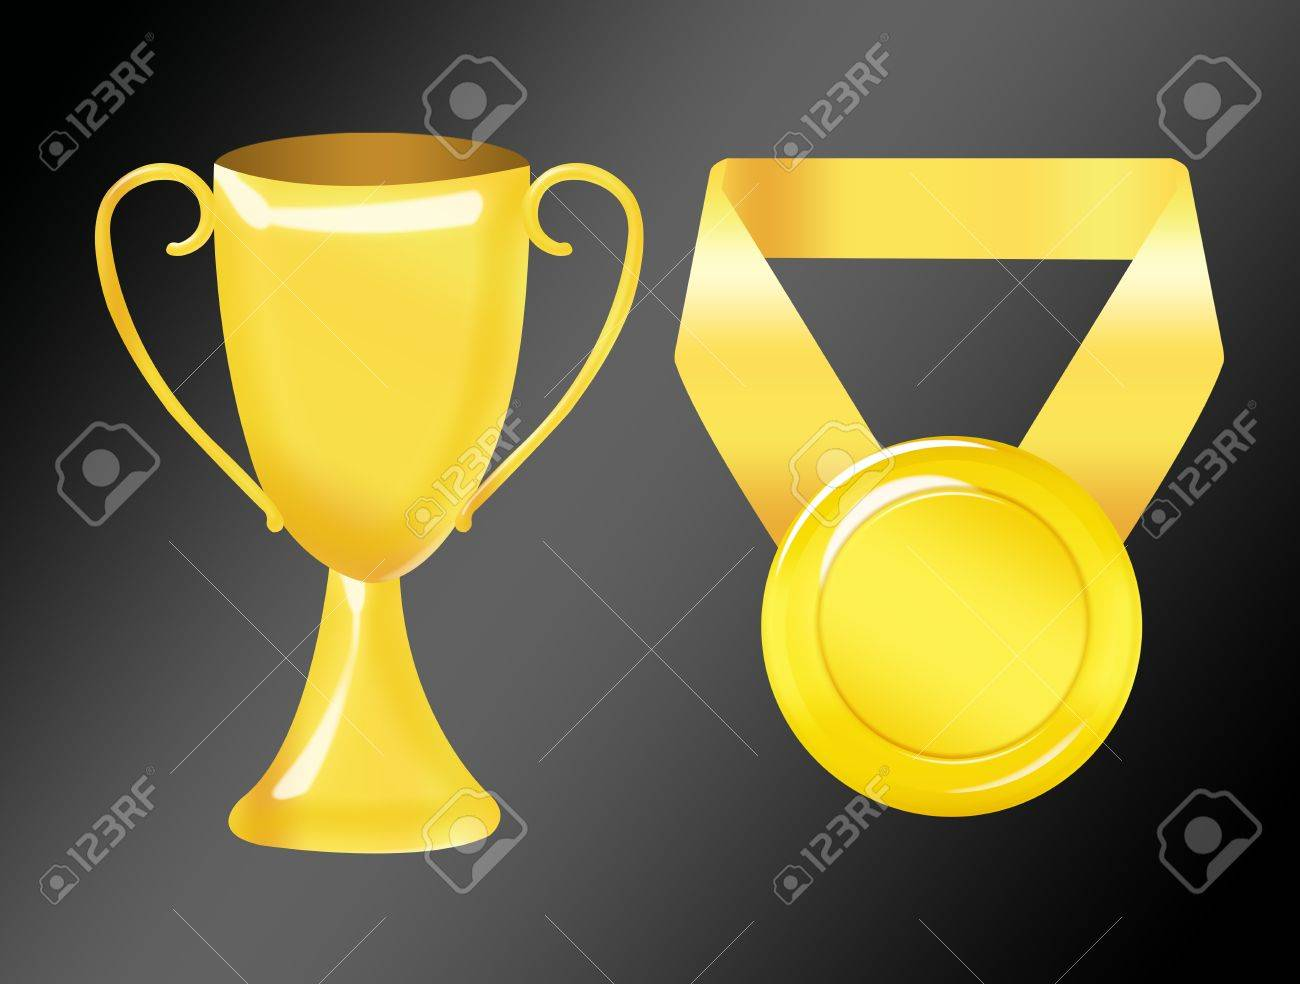 Gold Trophy And Medal Isolated Over Black Background Stock Photo